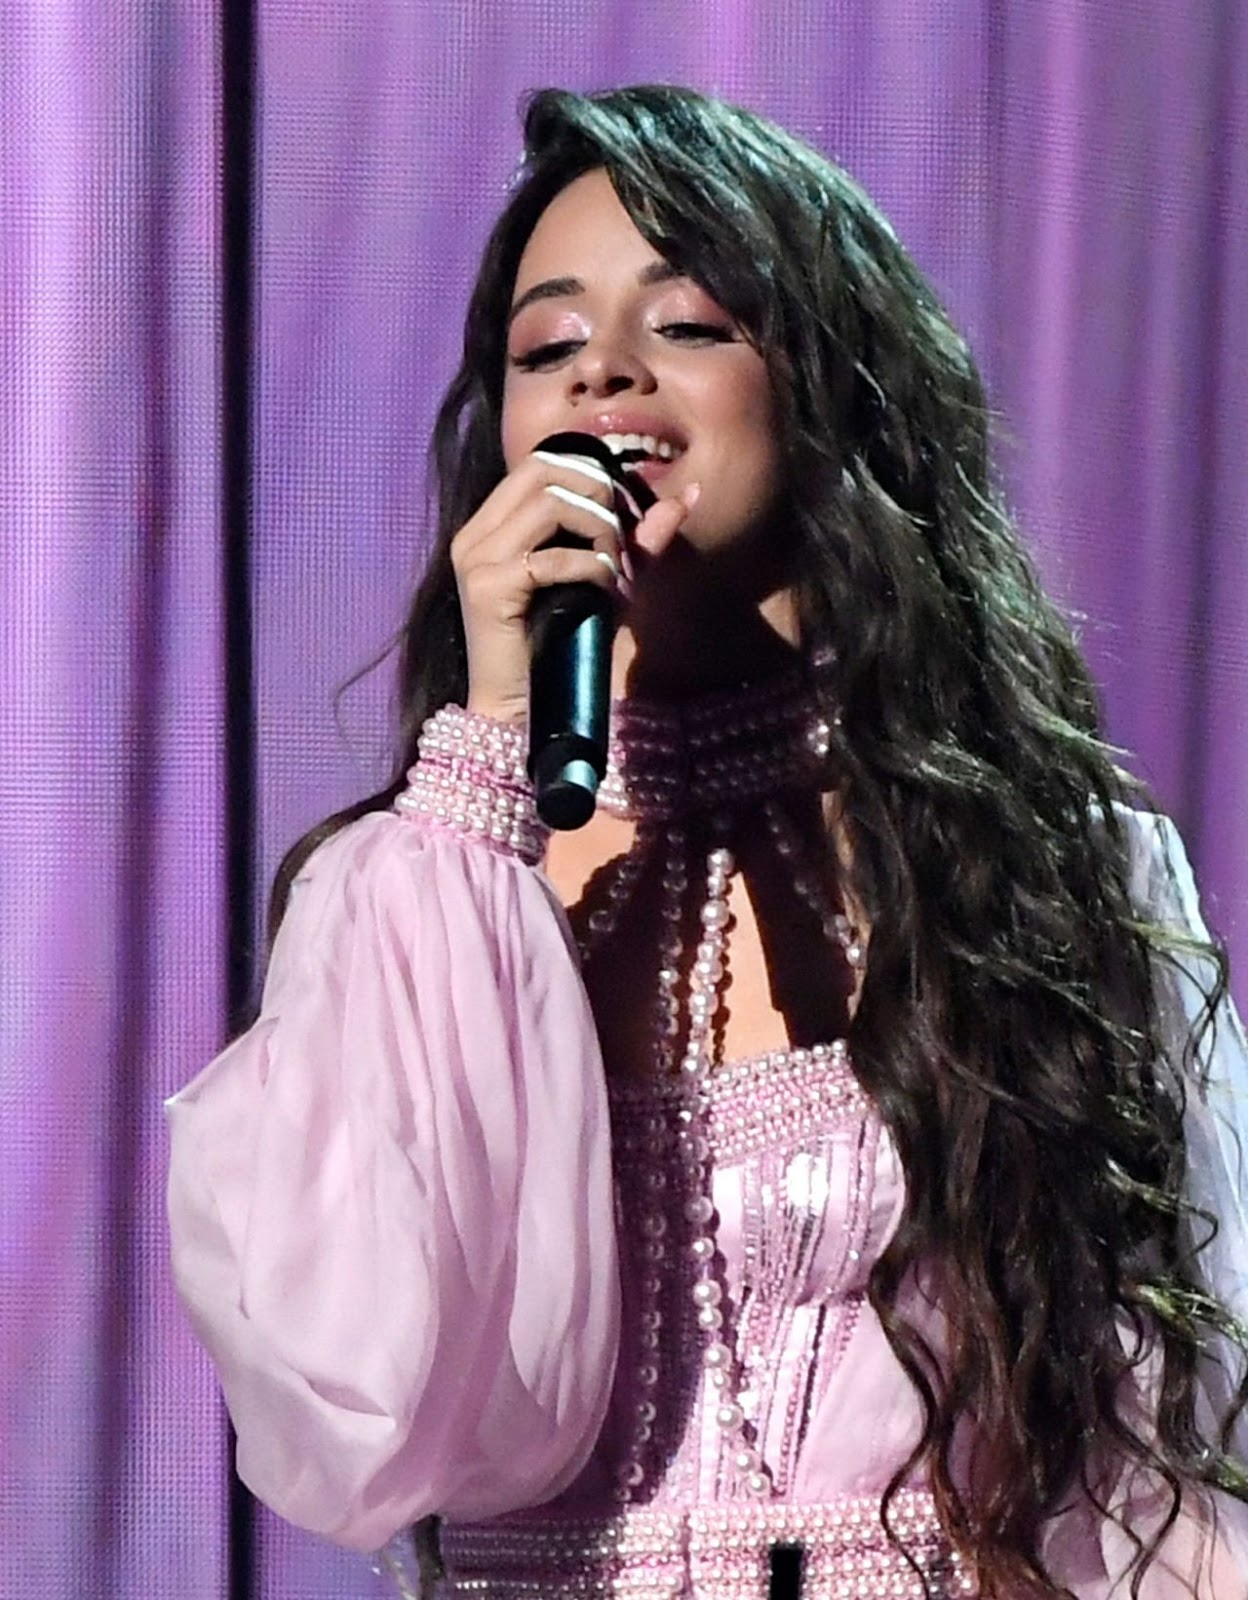 Camila Cabello Looks Hot in Pink Dress